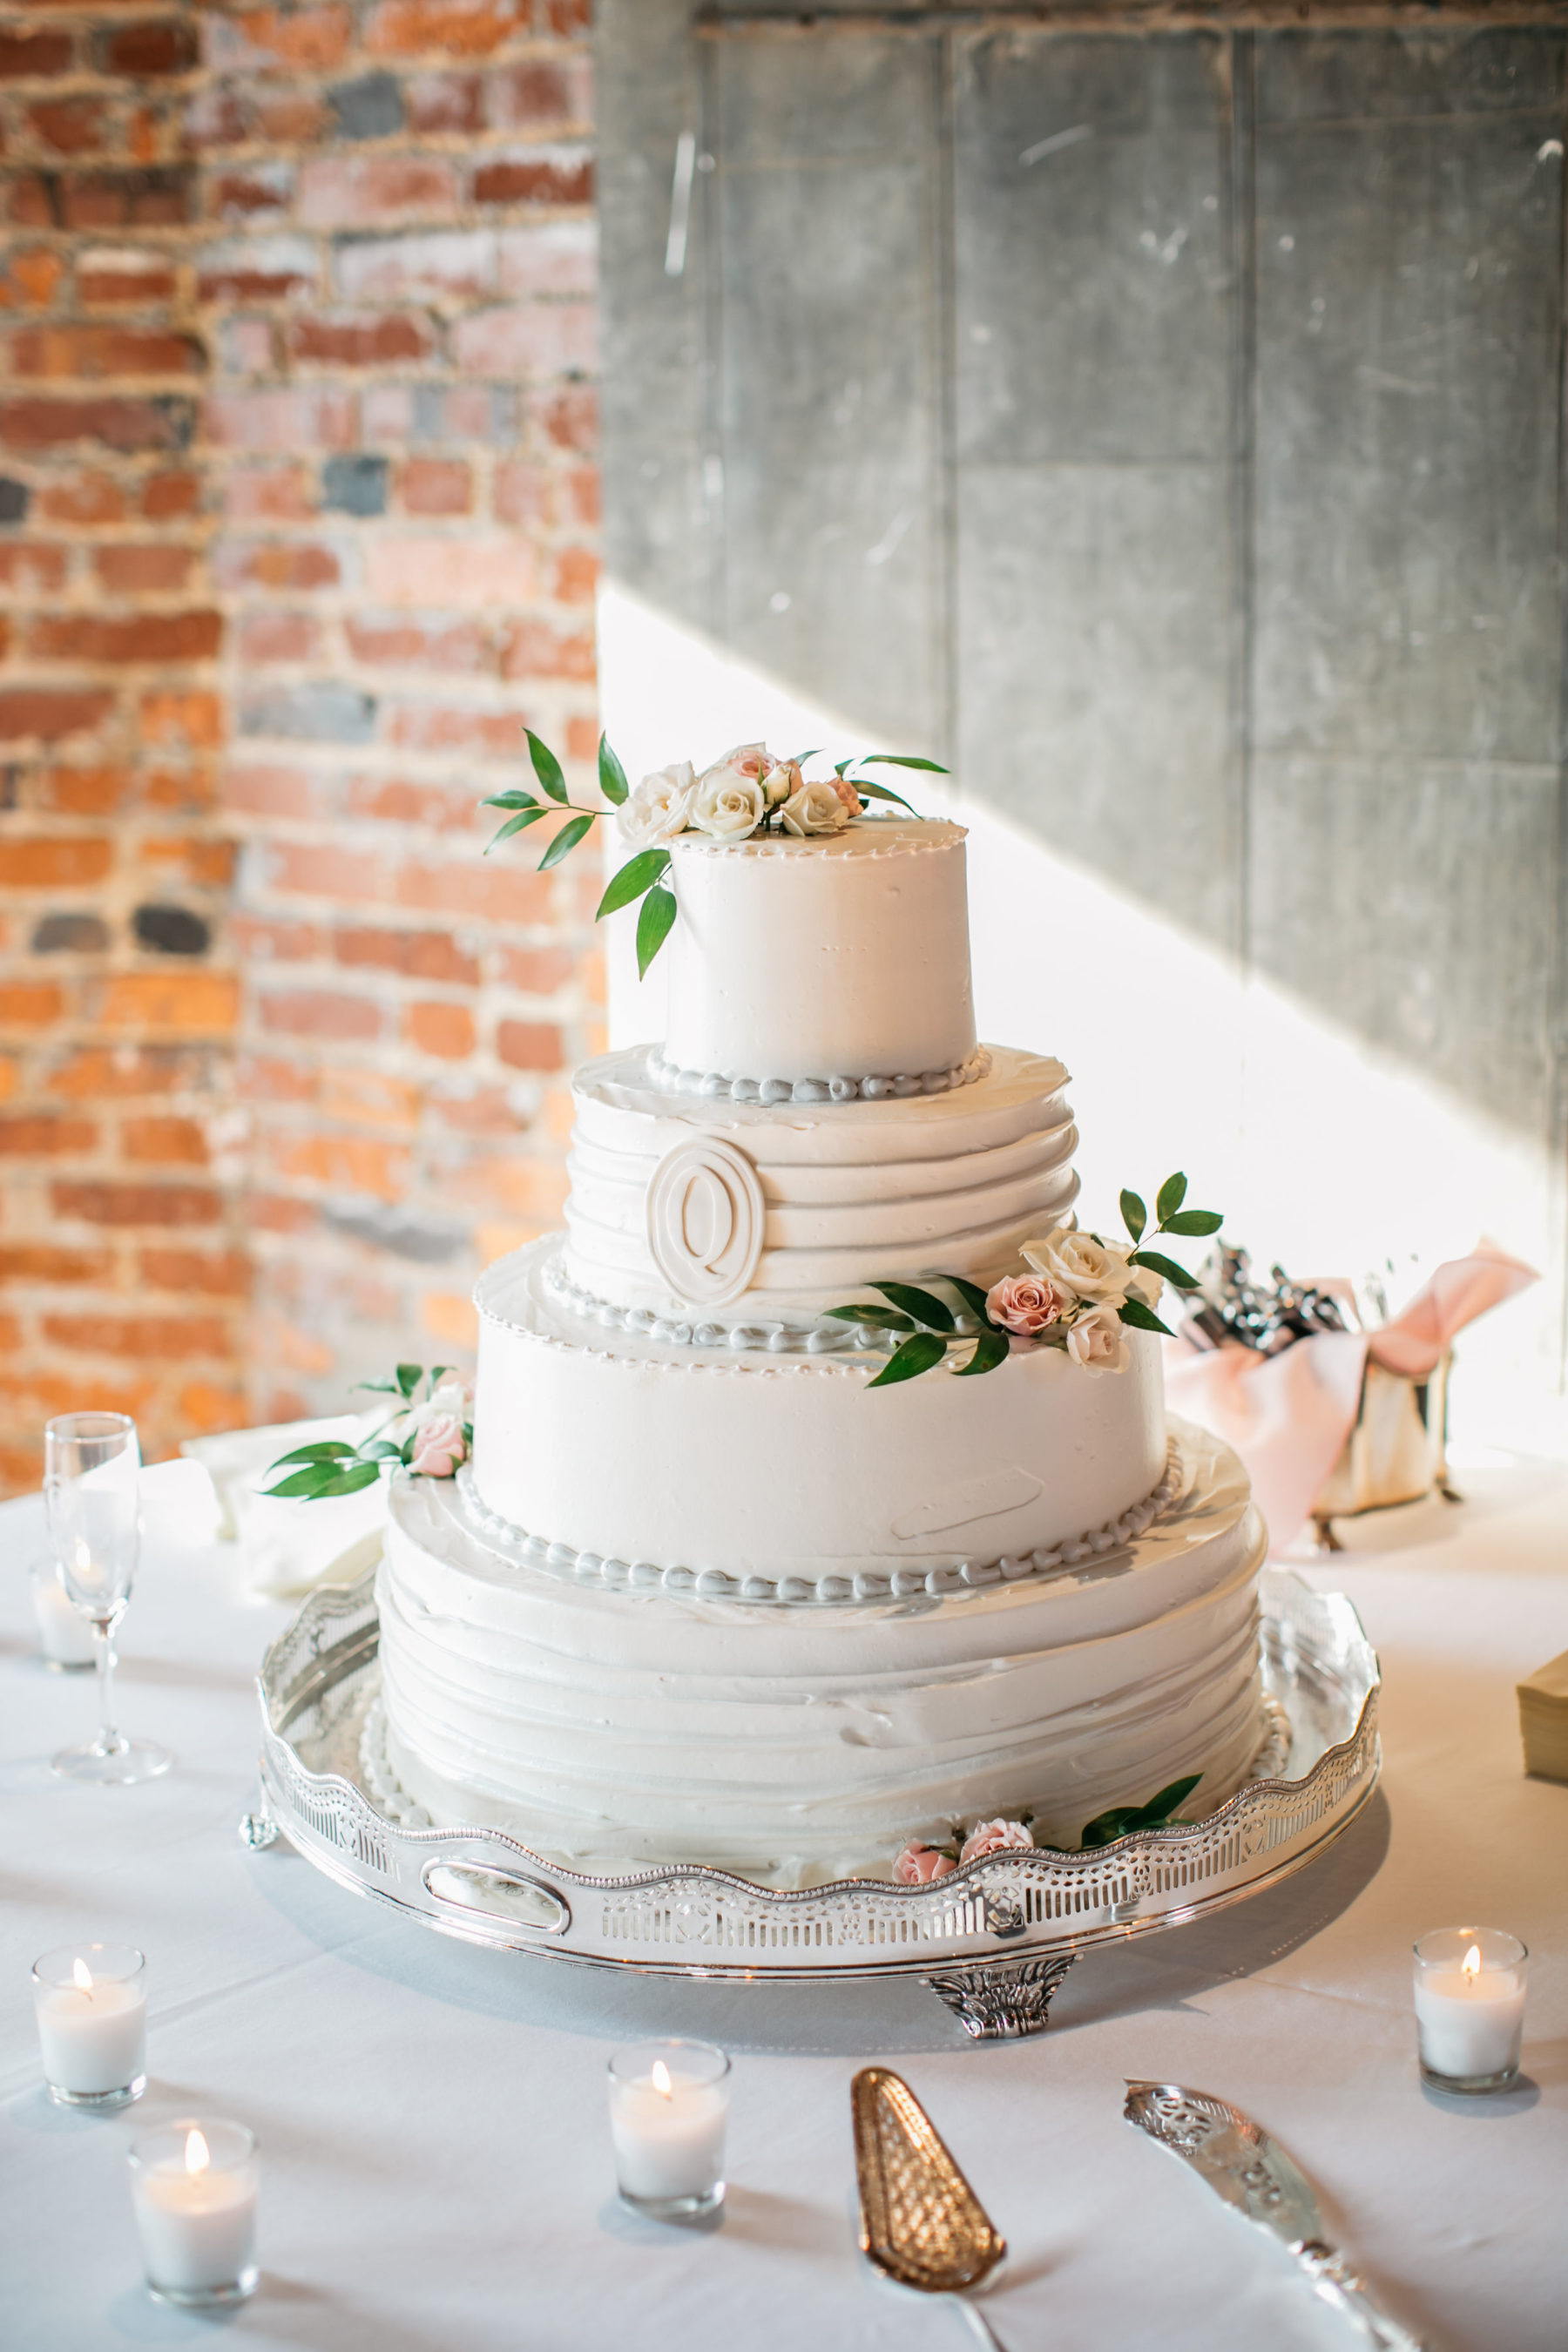 Wedding cake: Simply Elegant Nashville Wedding captured by Meredith Teasley